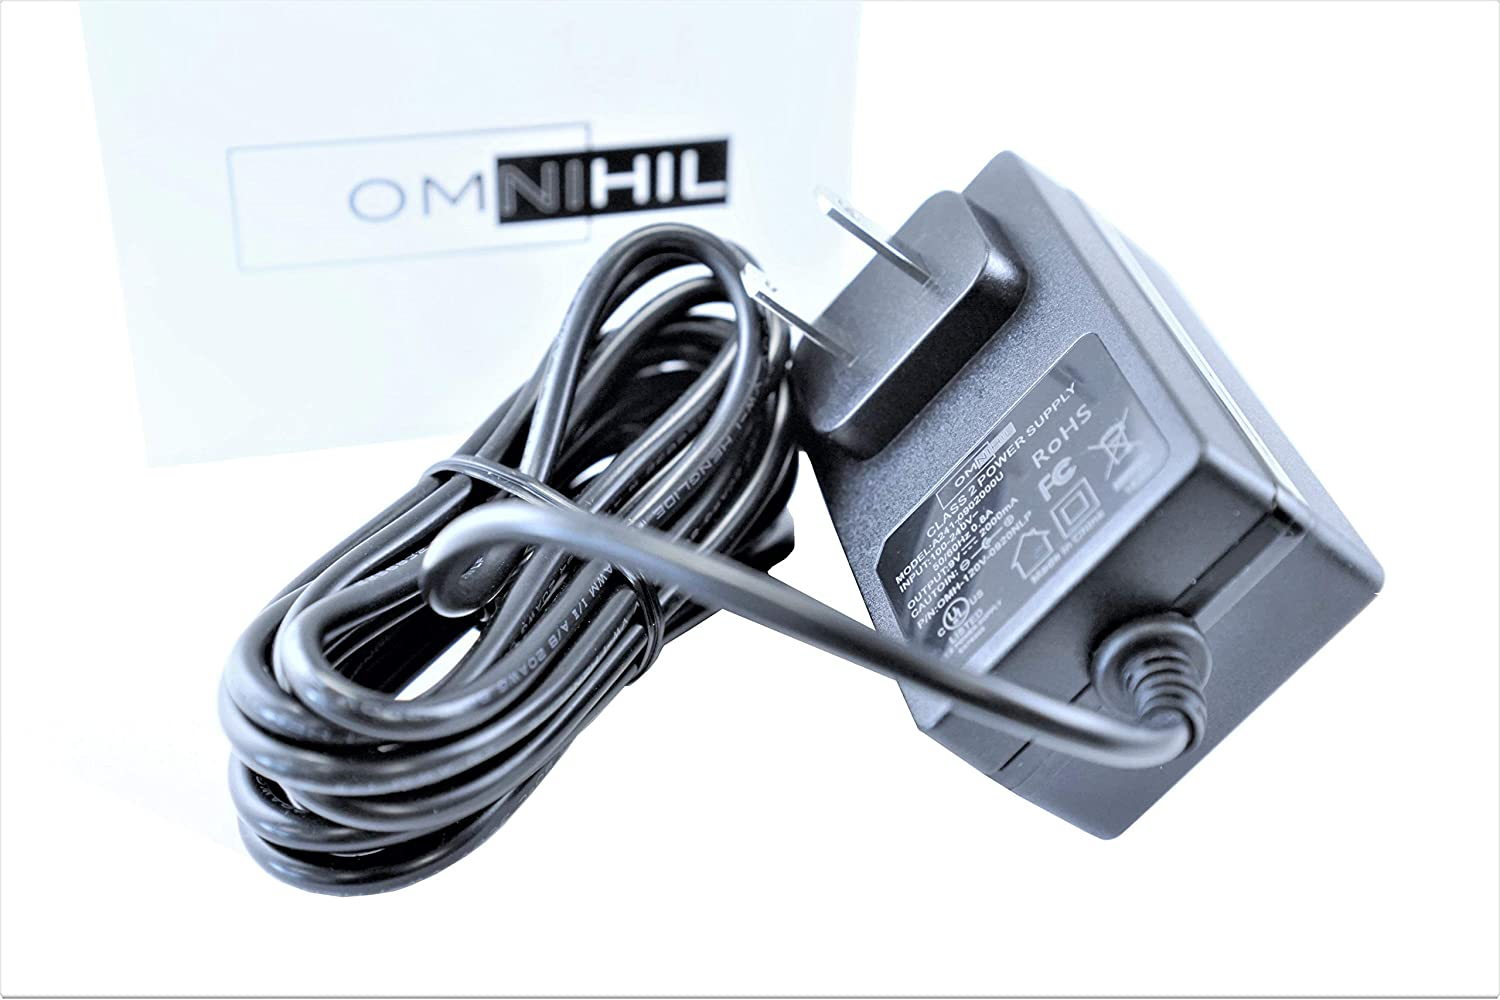 [UL Listed] OMNIHIL 8 Feet Long AC/DC Adapter Compatible with Bolt Power G06, D28A, K3 Mini Portable Car Battery Jump Starter Power Bank